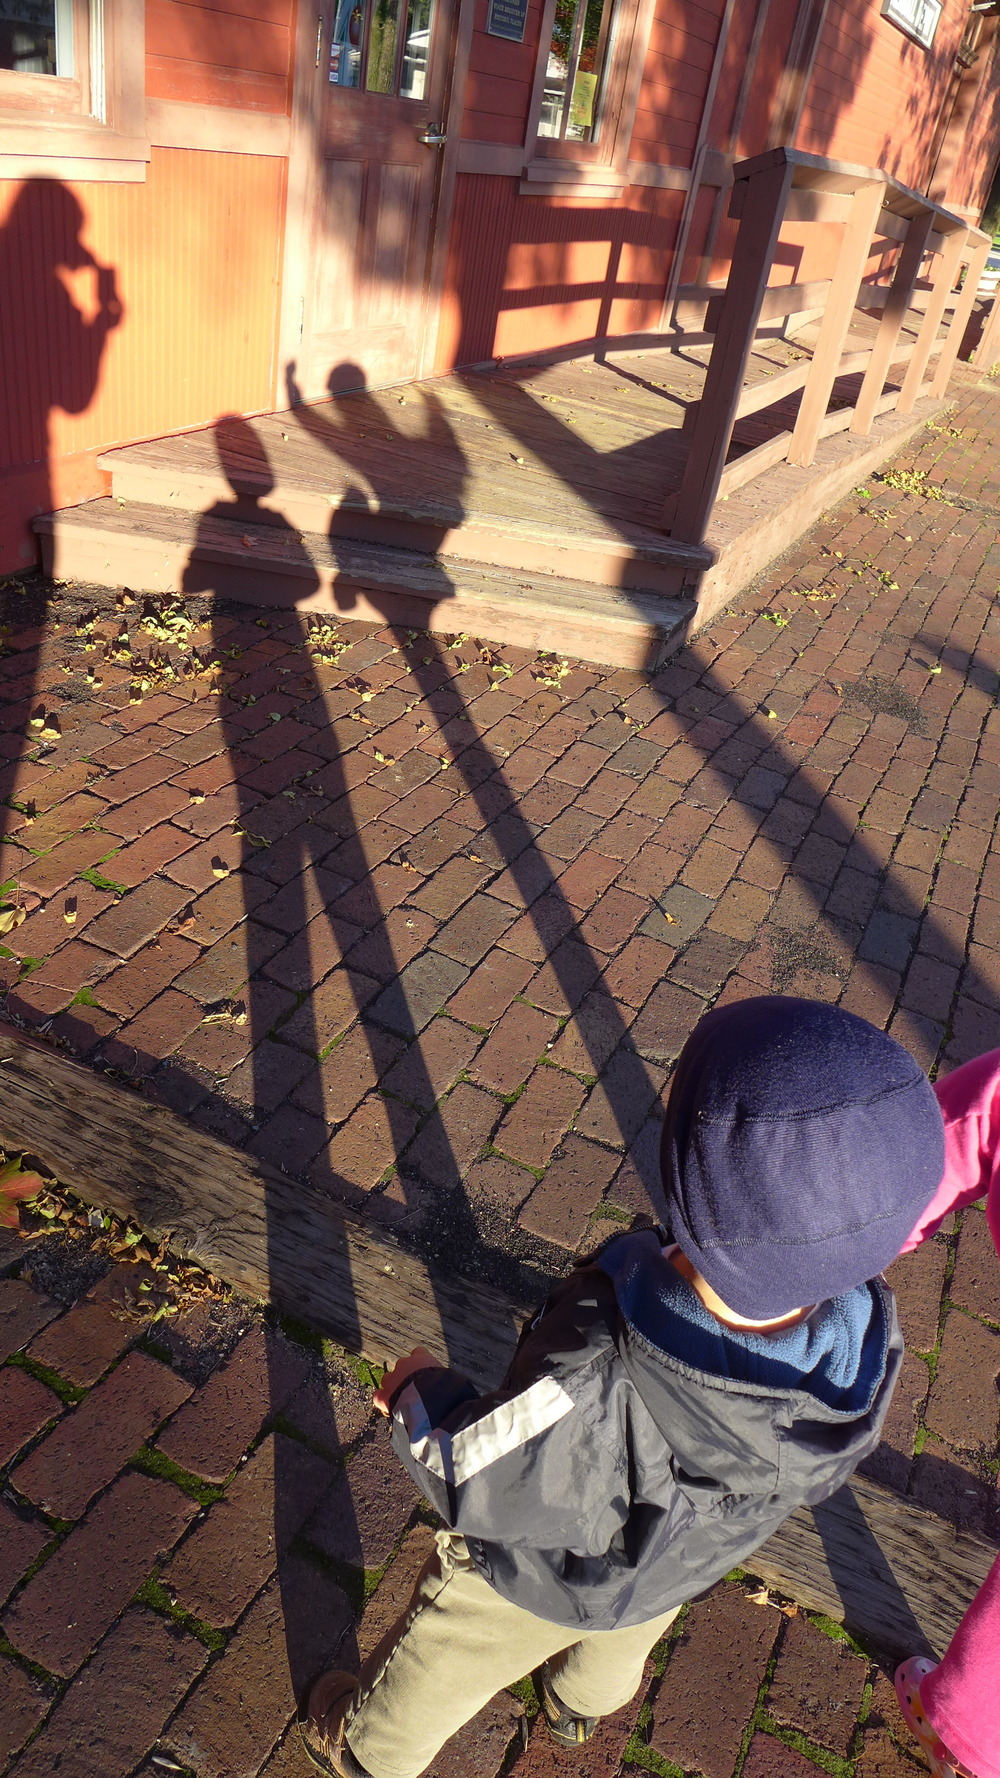 Shadow fun